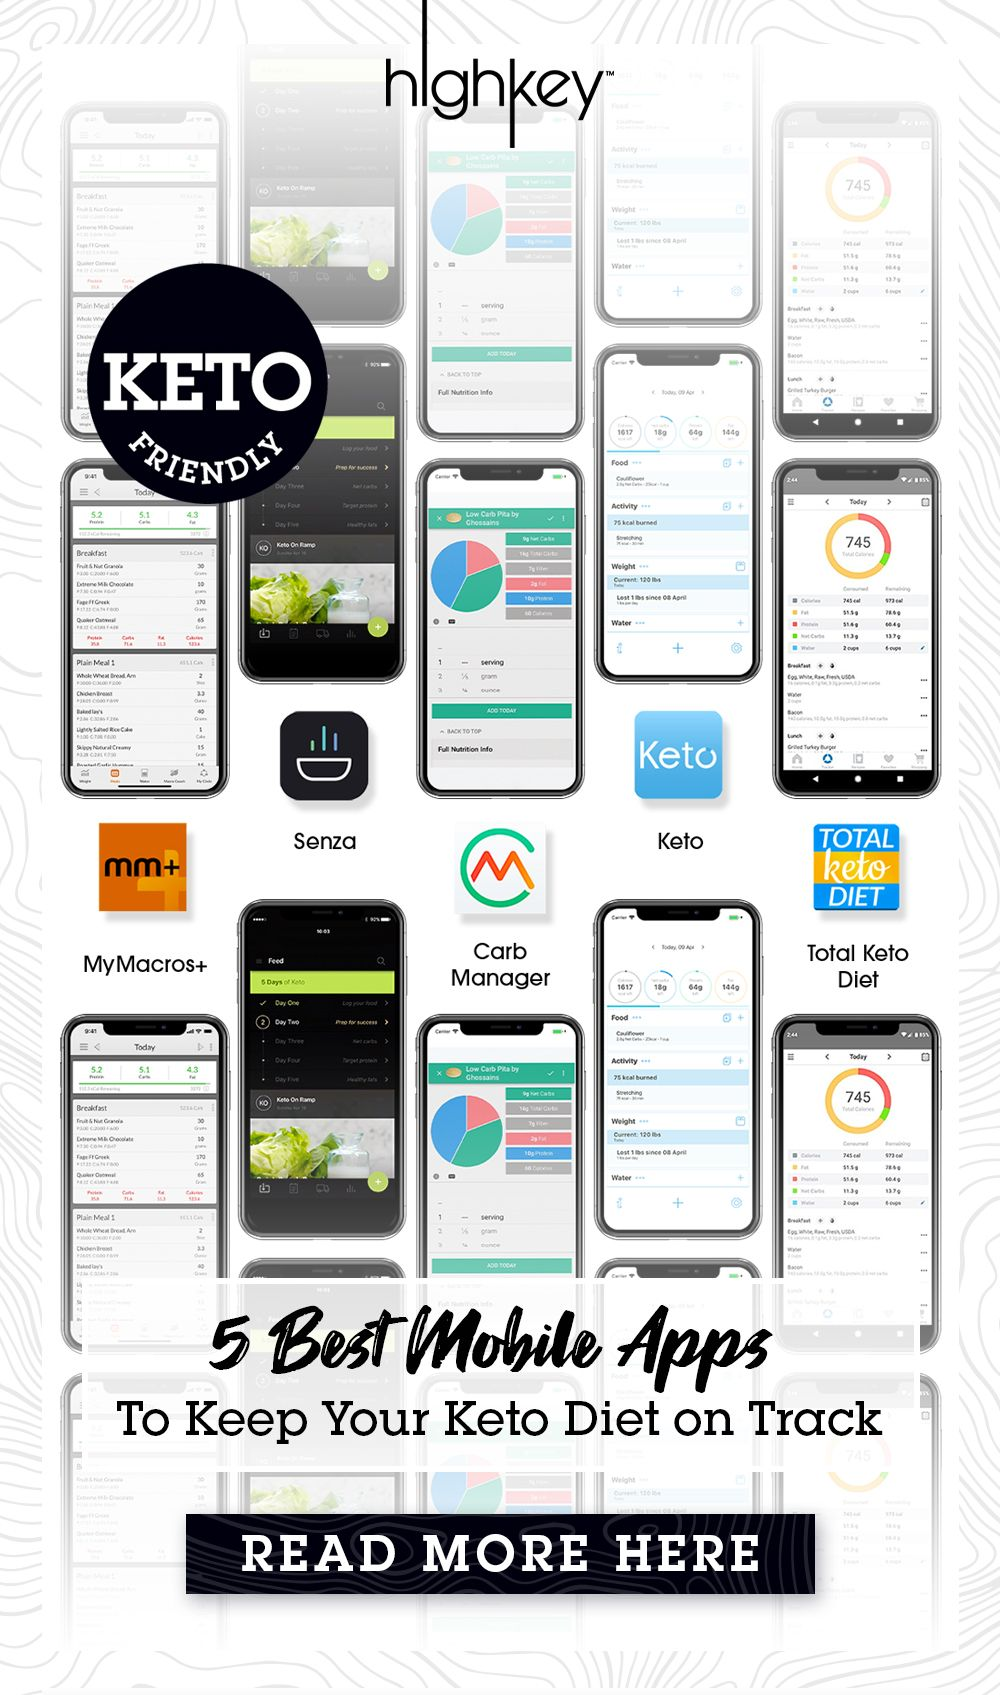 The 5 Best Mobile Apps To Keep Your Keto Diet On Track Keto Diet Best Mobile Apps Keto Diet App